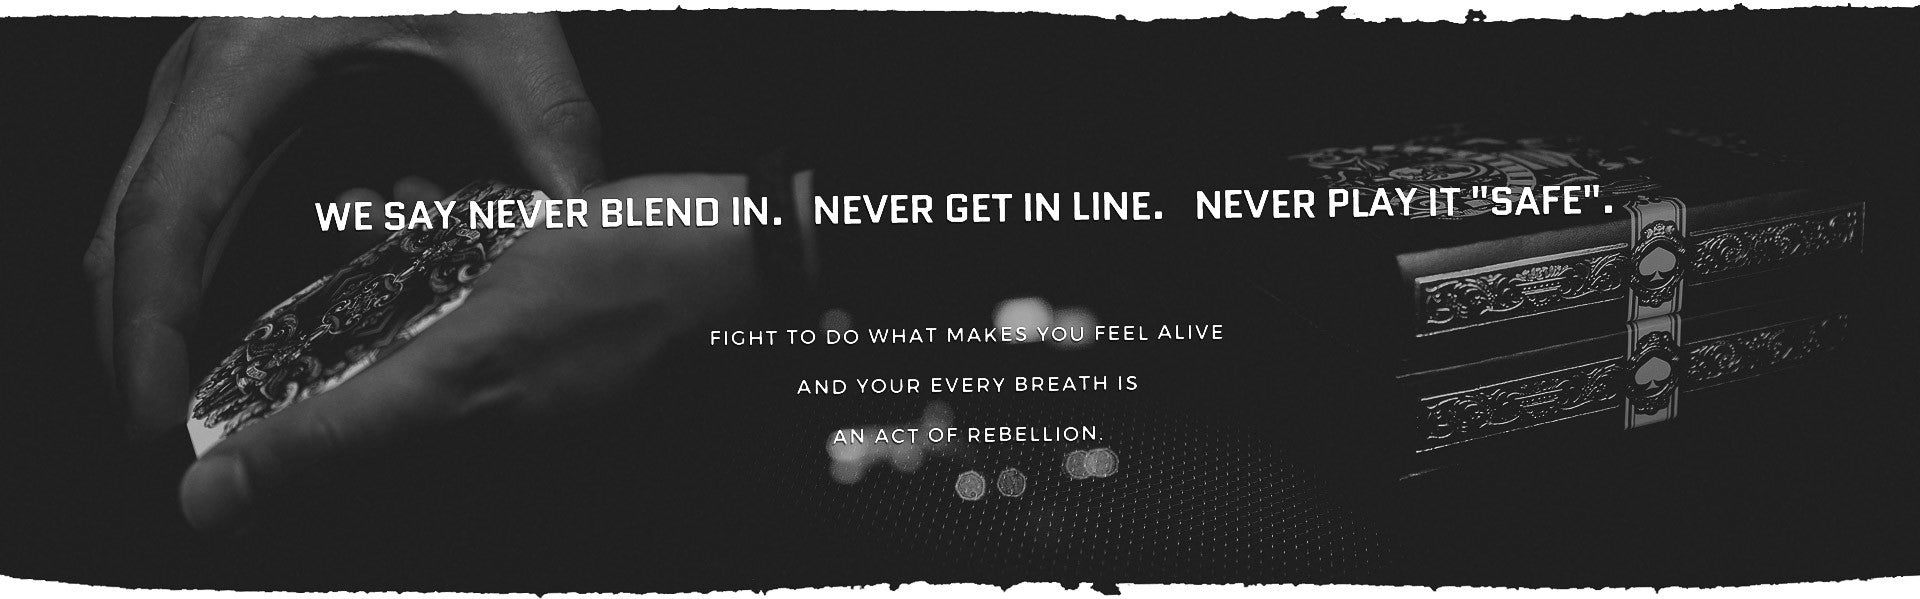 "We say never blend in. Never get in line. Never play ""safe"". Fight to do what makes you come alive and your every breath is an act of rebellion."